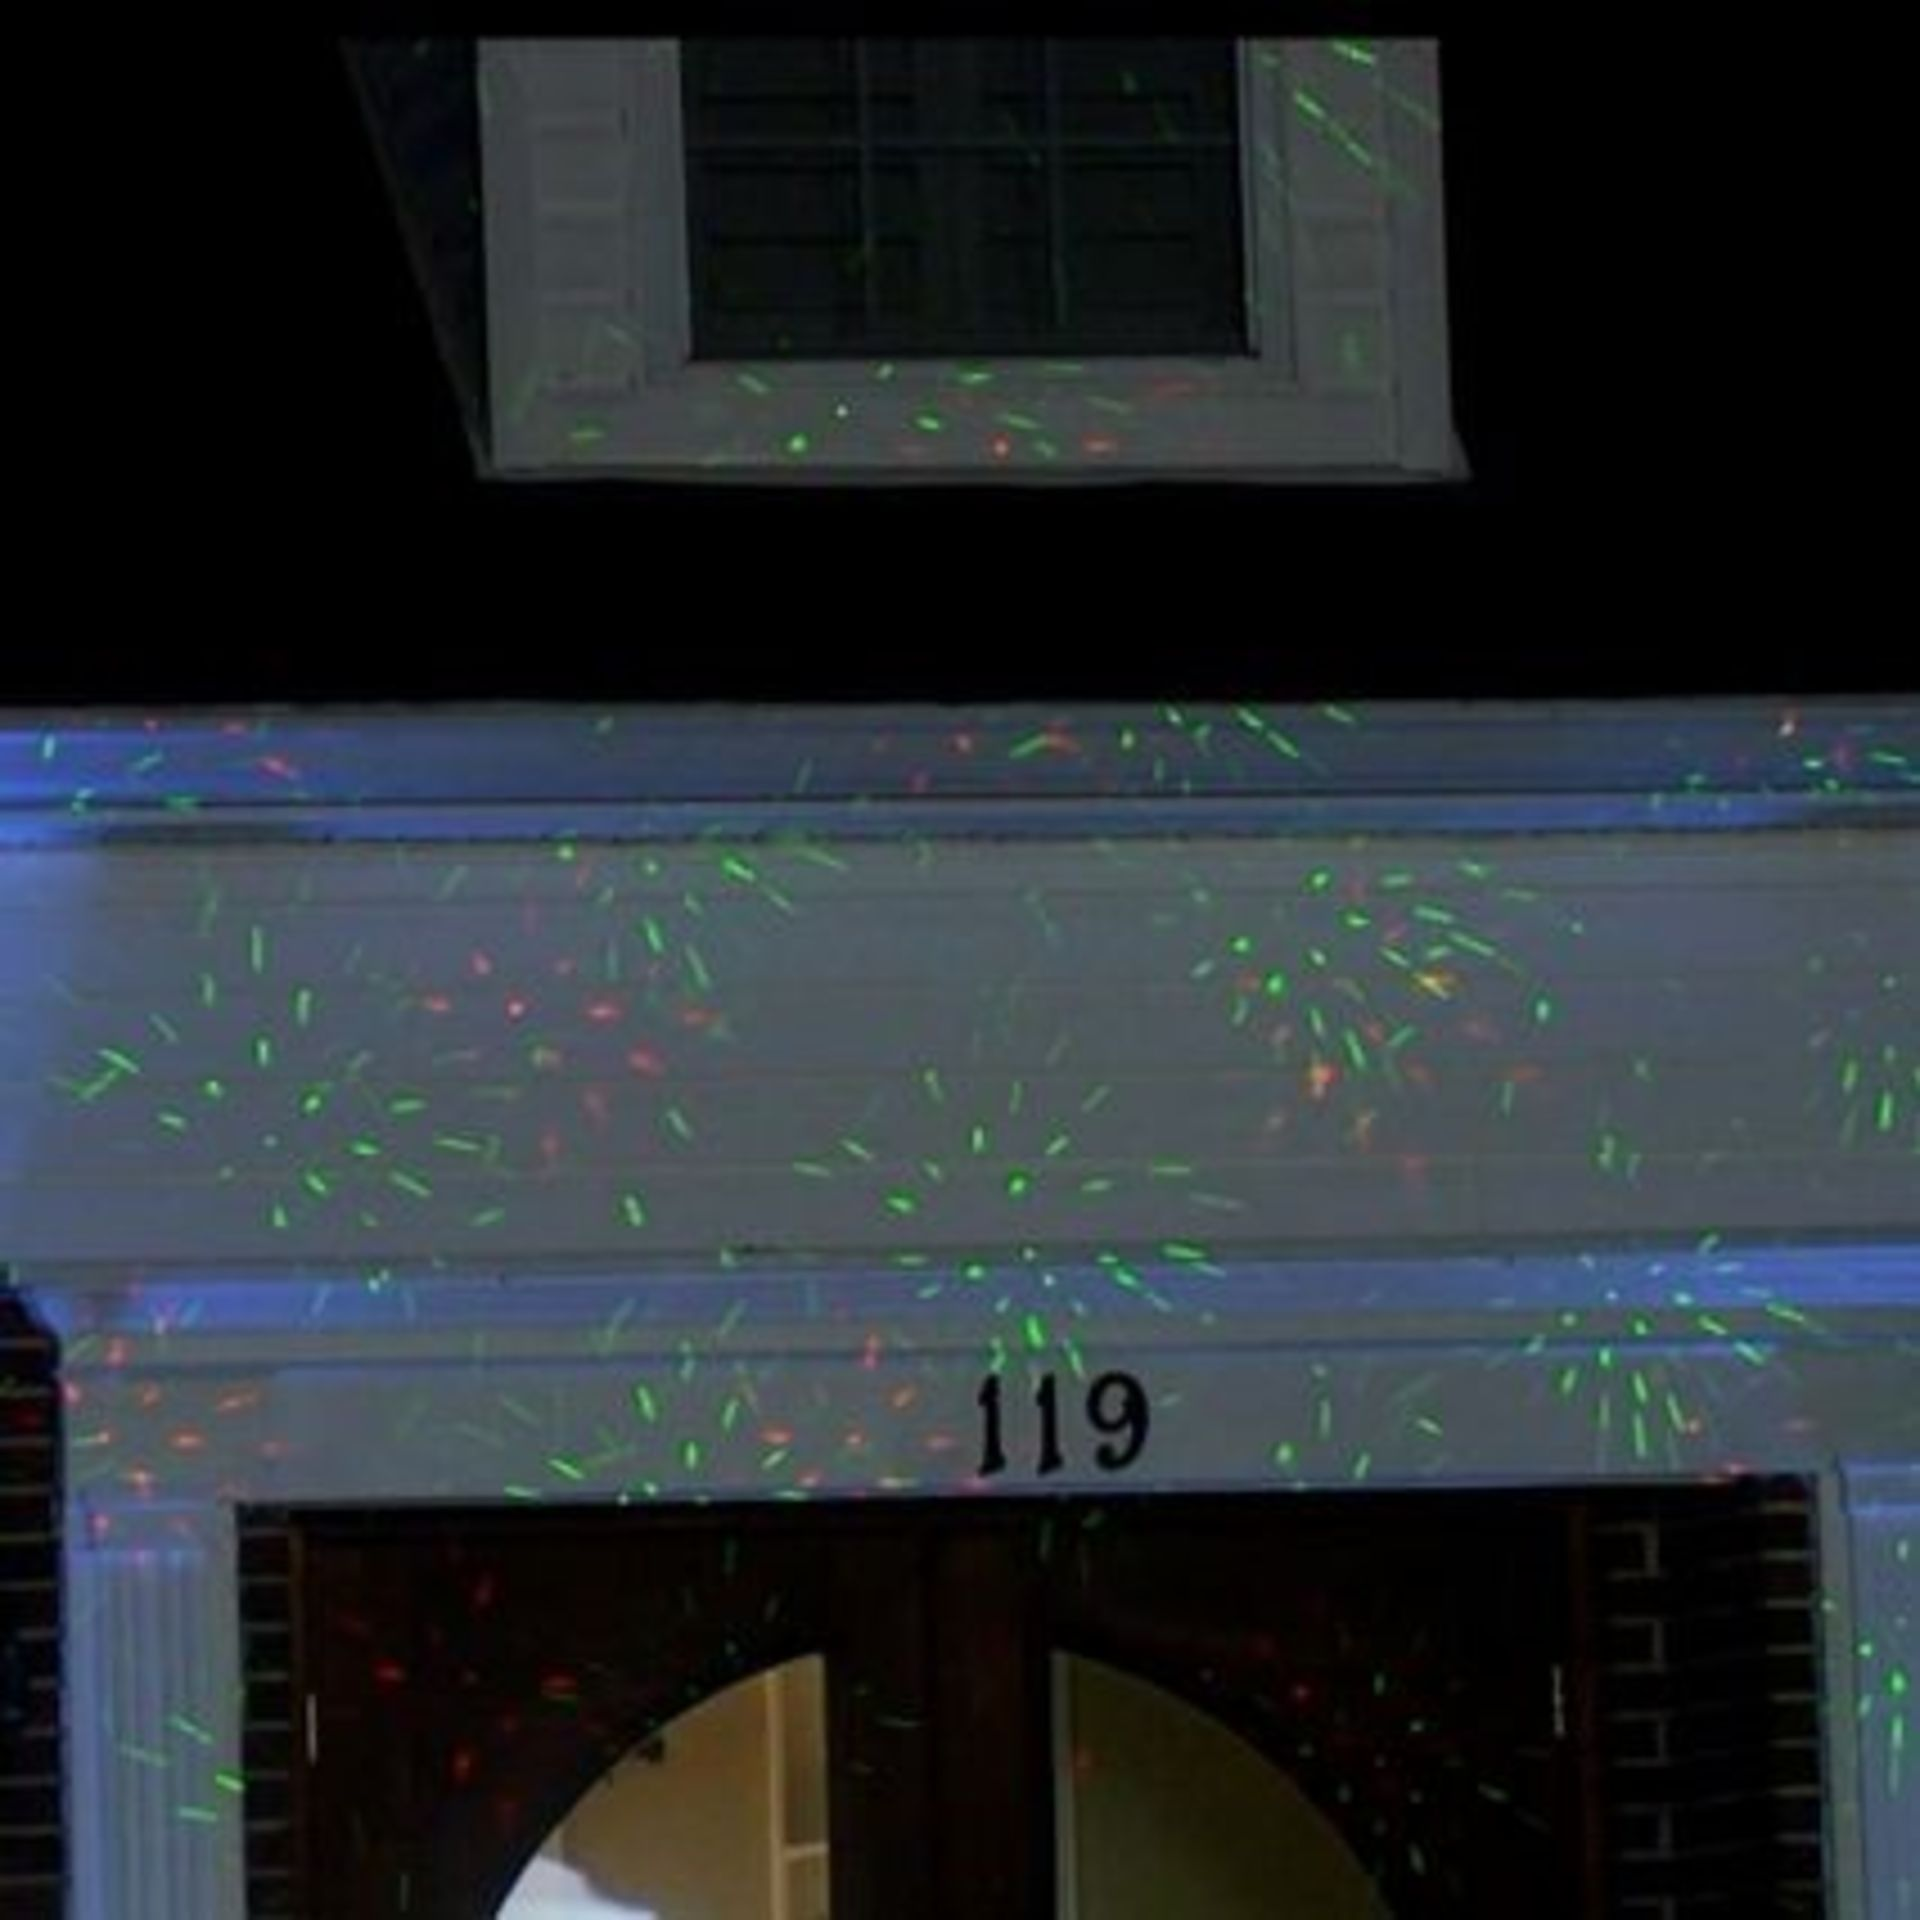 | 2X | BOX OF 6 STARTASTIC ACTION LASER PROJECTORS WITH 6 LASER MODES | NEW AND BOXED | SKU - Image 8 of 8